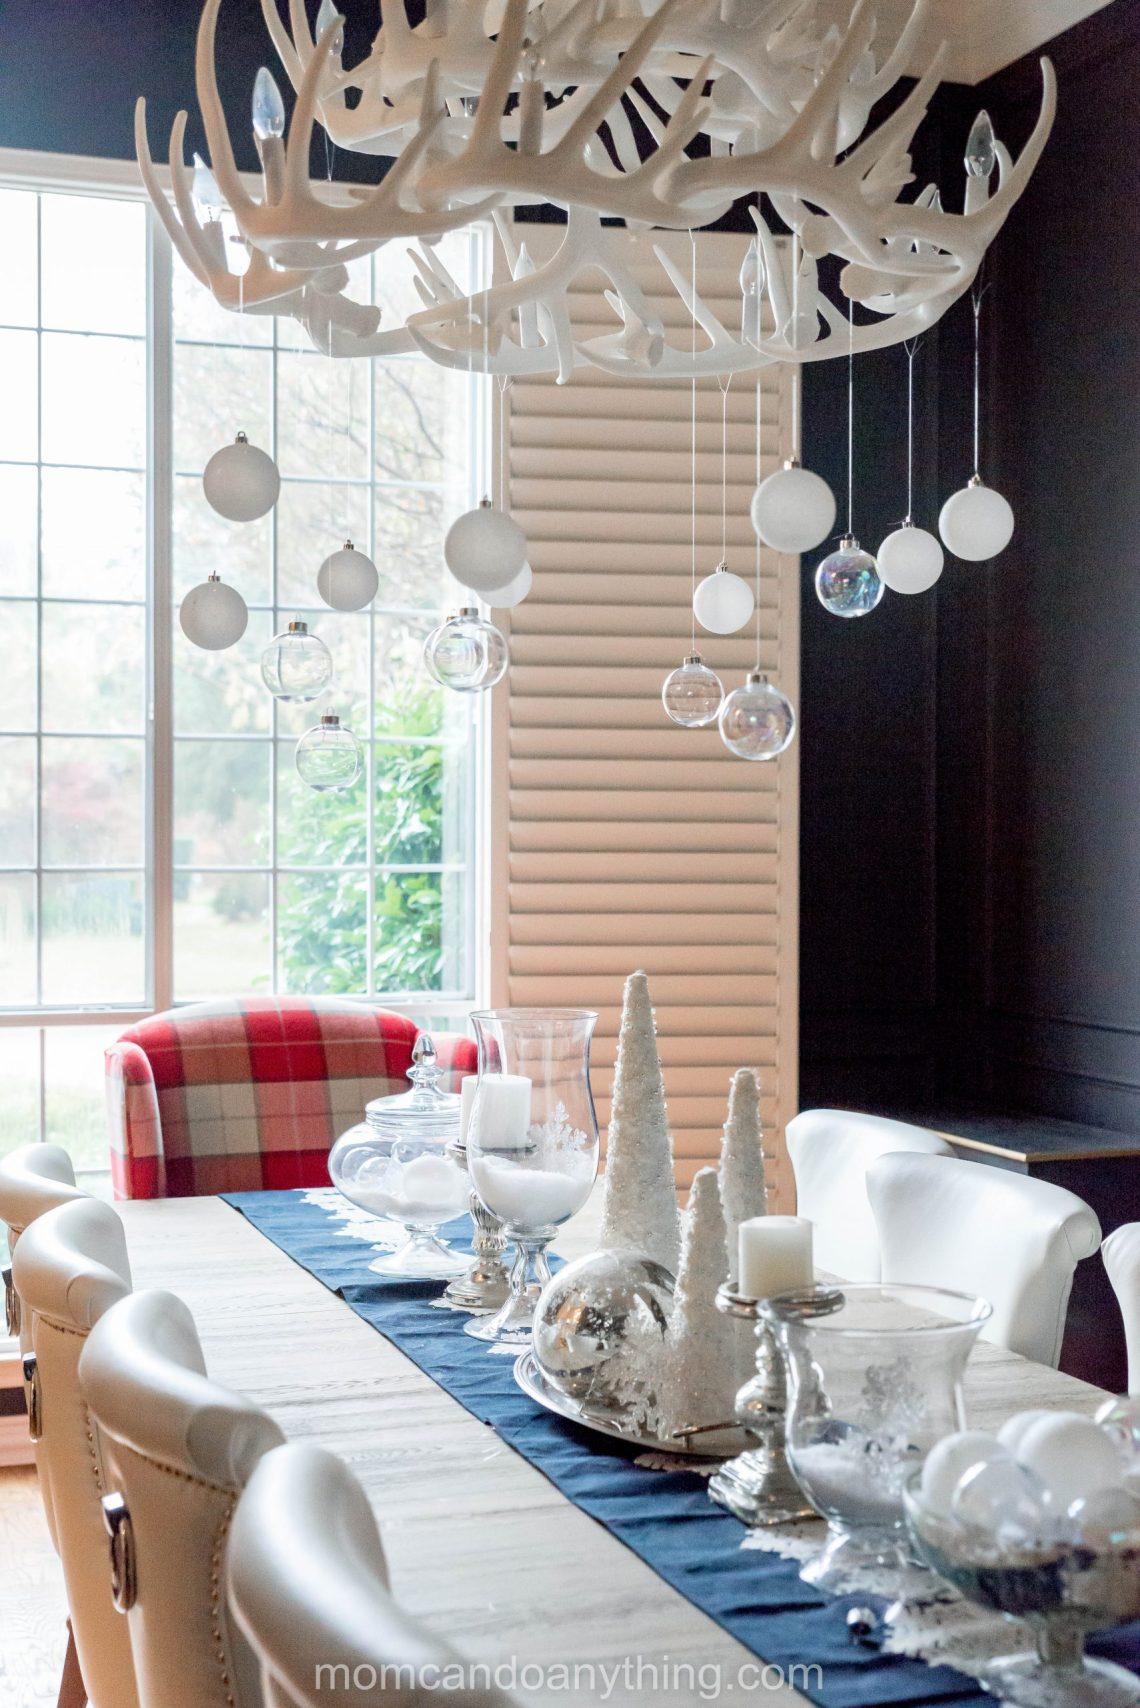 Christmas Chandelier Decoration Ideas_Mom Can Do Anything (6 of 7)